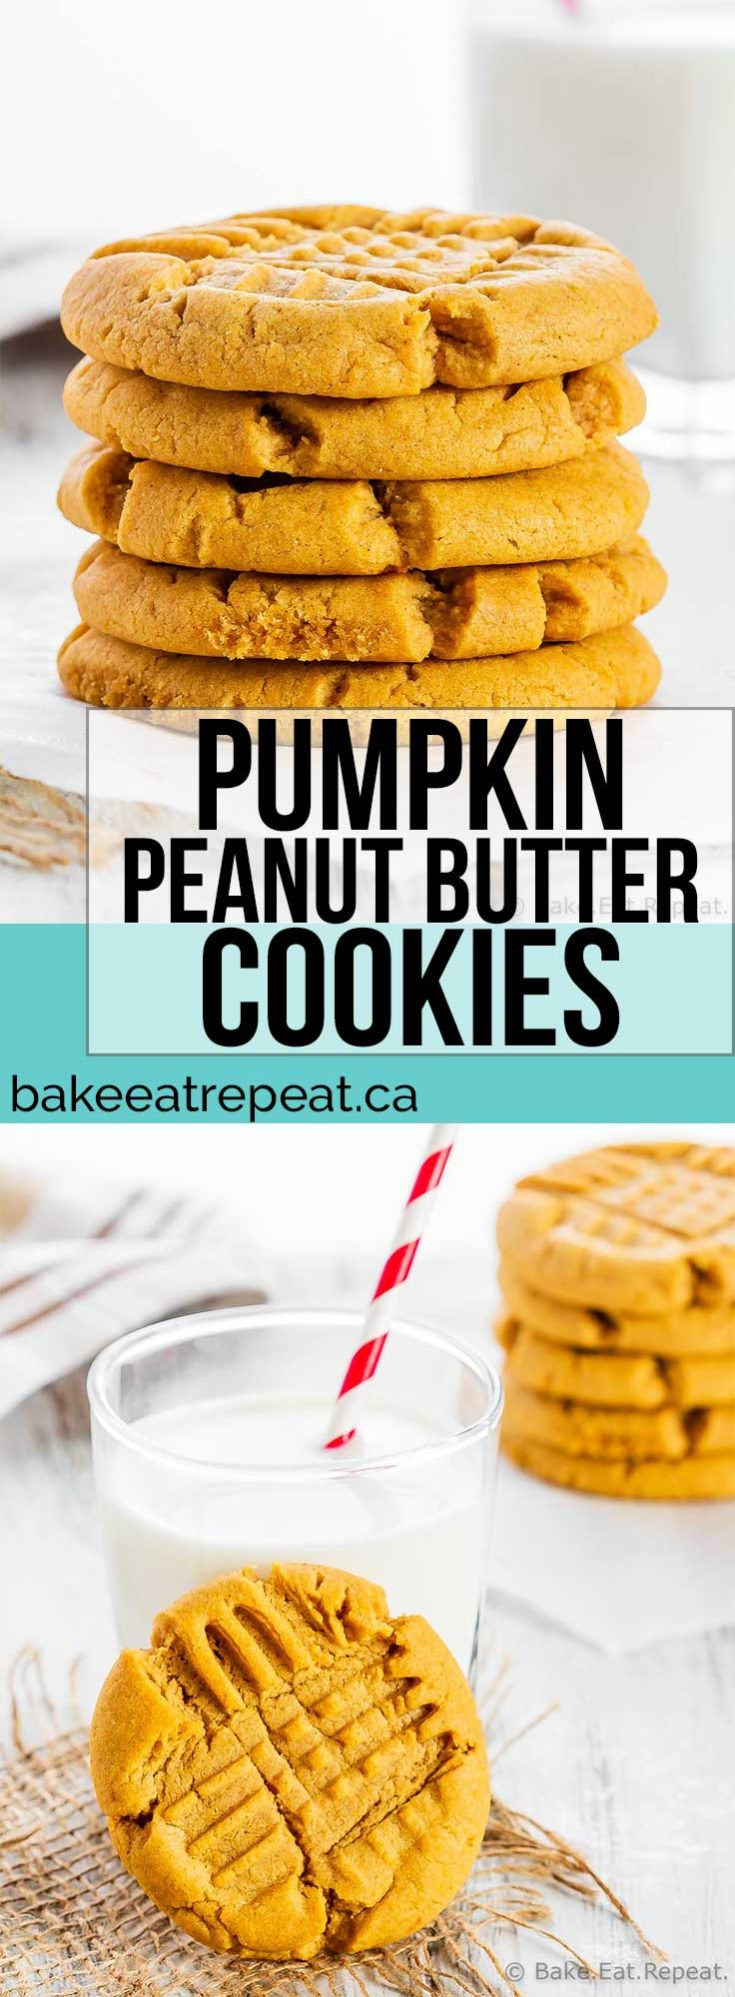 These pumpkin peanut butter cookies are soft and chewy with lots of cinnamon flavour. They make the perfect treat for enjoying pumpkin flavour in the fall! #pumpkin #peanutbutter #cookies #pumpkincookies #peanutbuttercookies